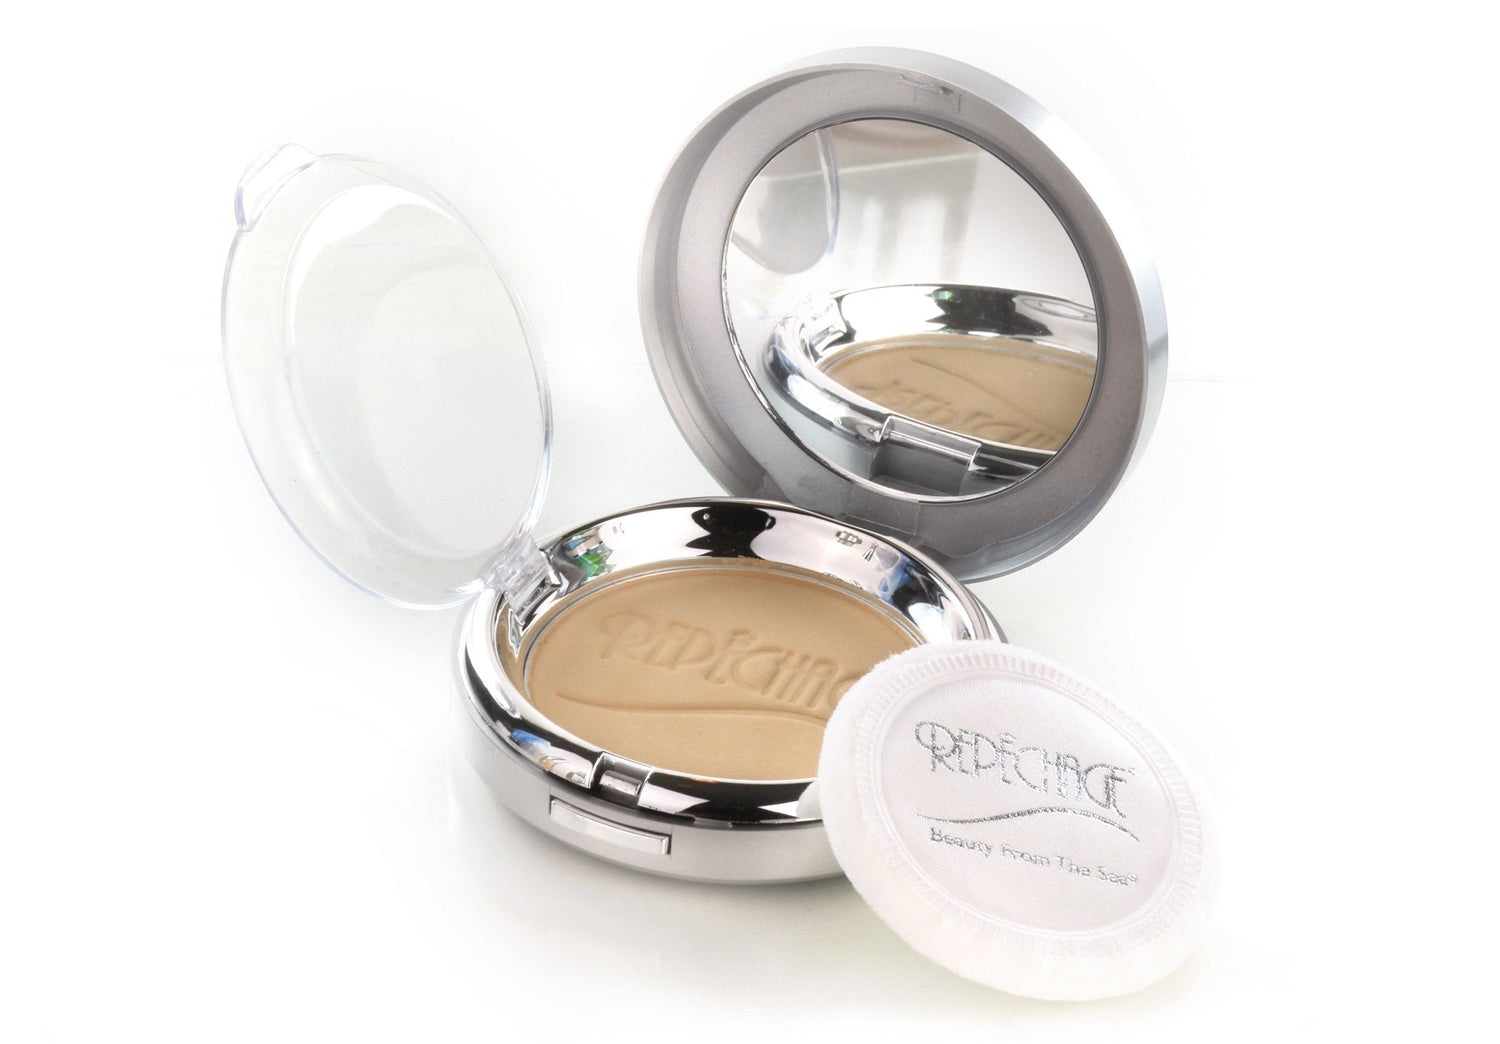 Perfect Skin Natural Finish Pressed Powder - Medium